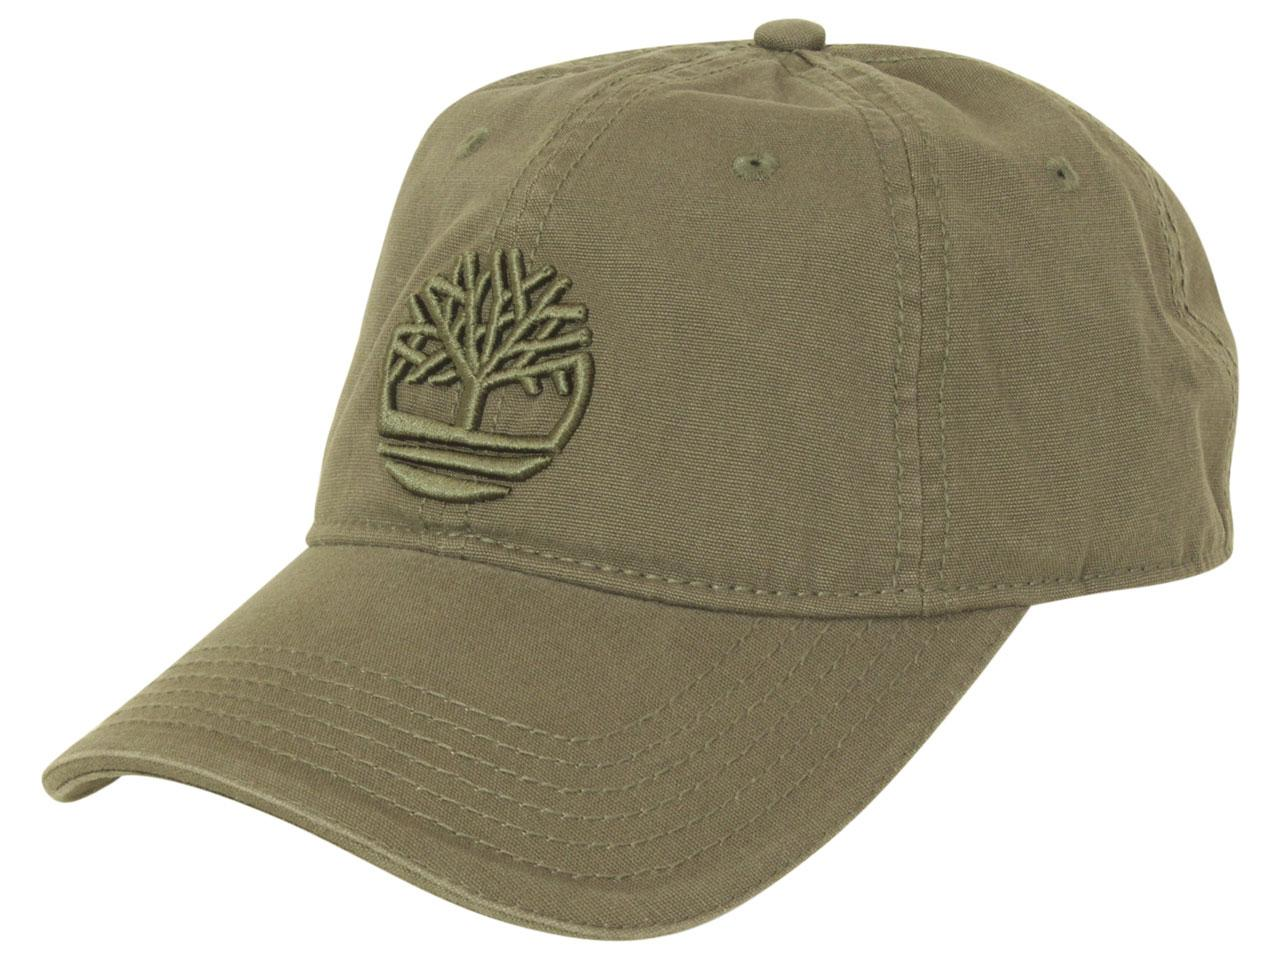 Image of - Grape Leaf - One Size Fits Most